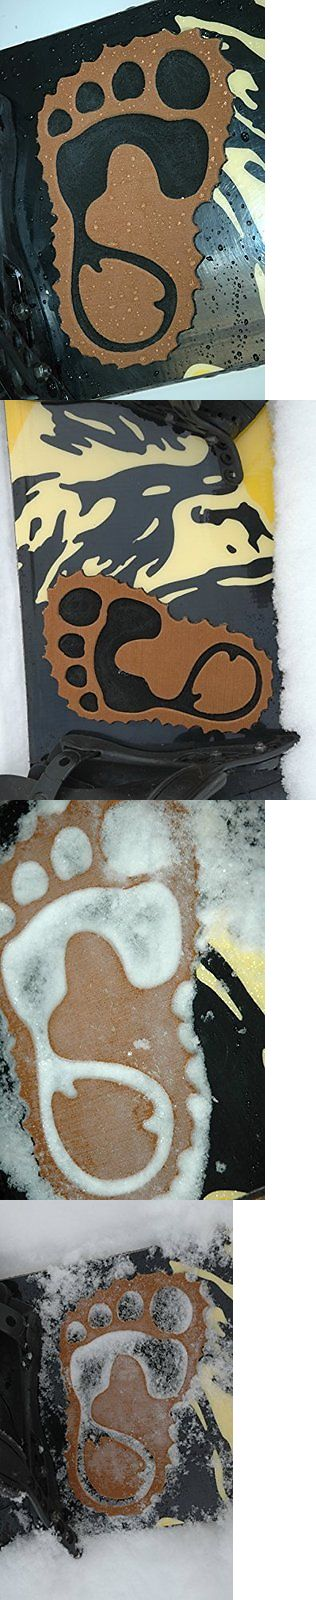 Stomp Pads 159184: New Toejamr Snowboard Stomp Pad Bigfoot Furry Brown Left Free Shipping BUY IT NOW ONLY: $72.47